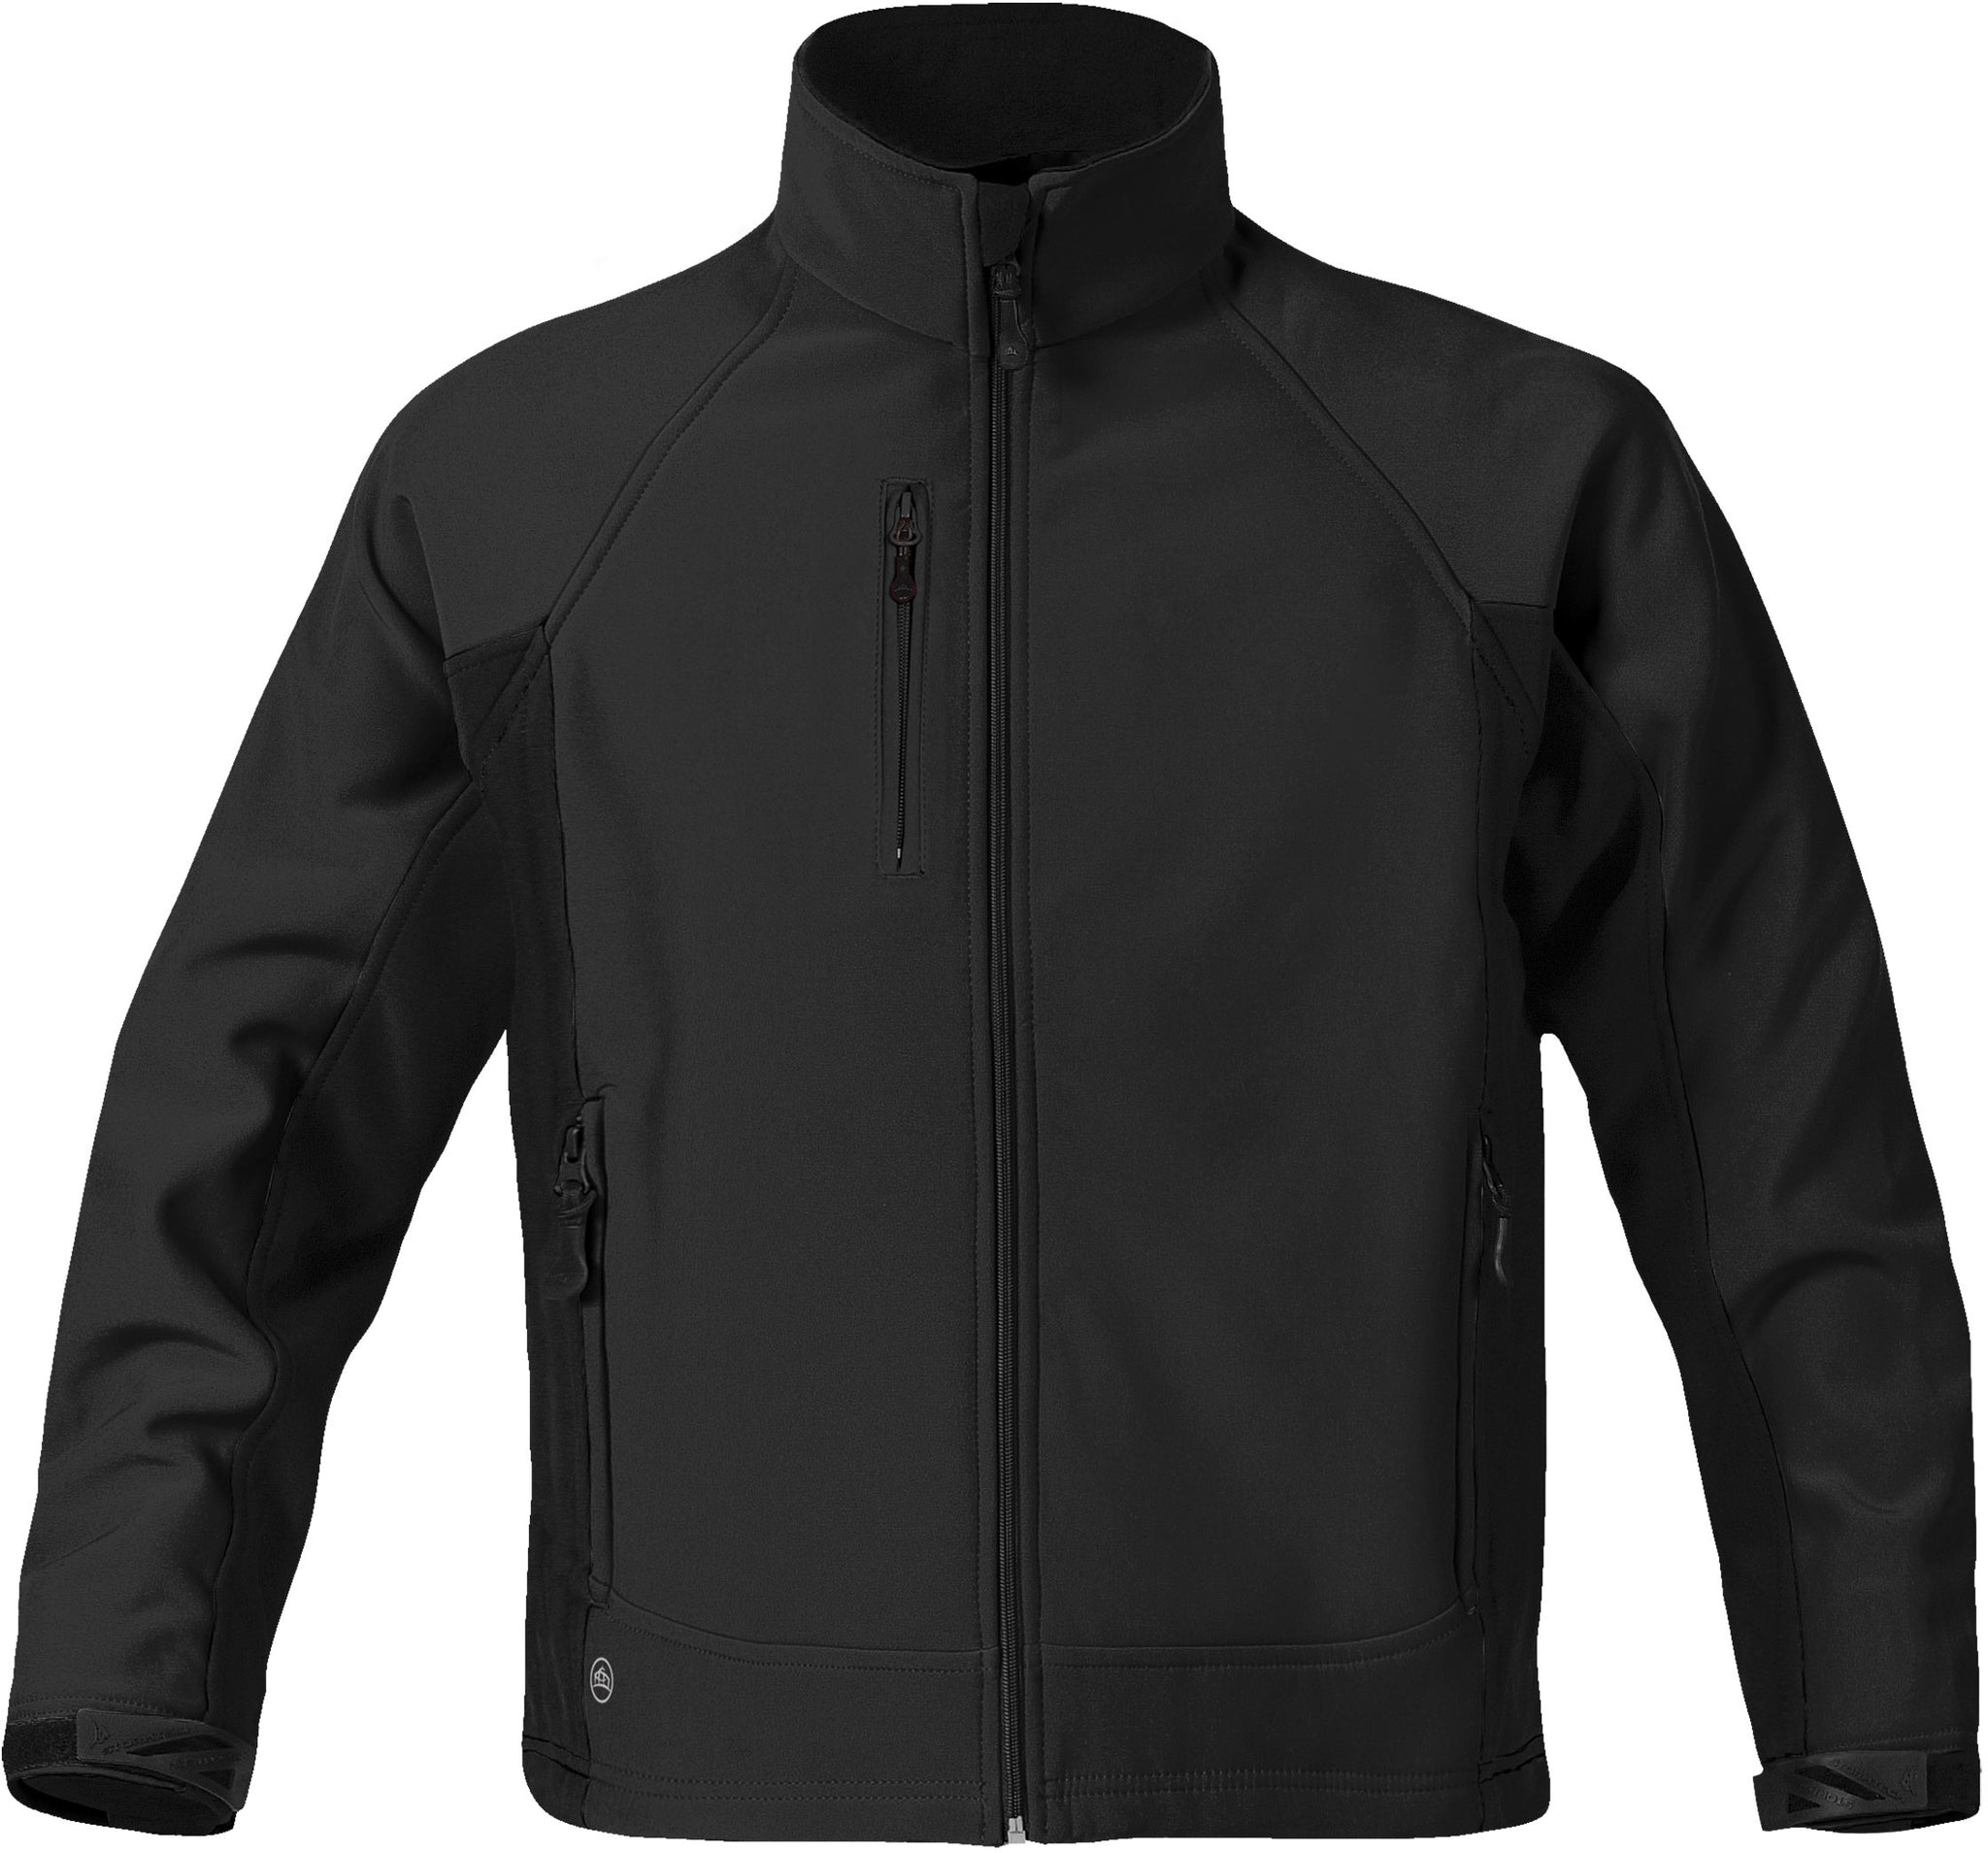 STORMTECH YOUTH CREW BONDED THERMAL SHELL JACKET